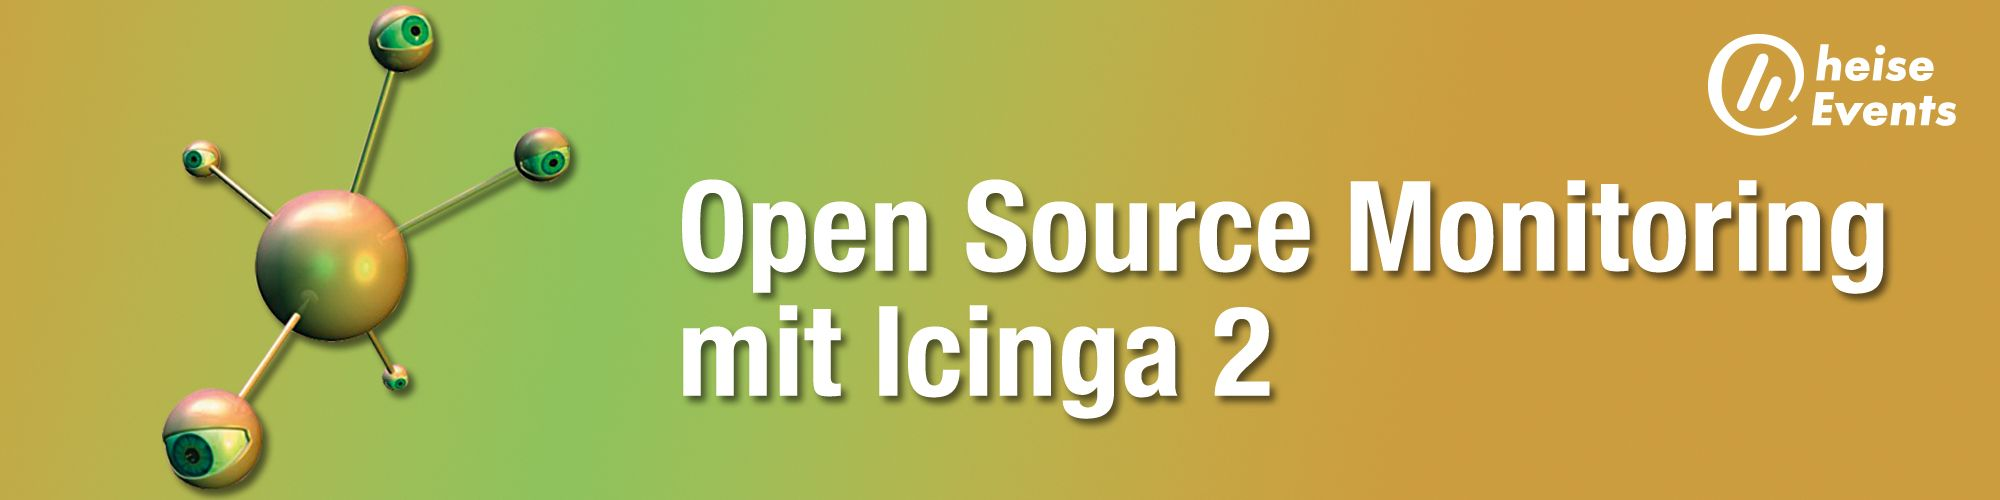 Open Source Monitoring mit Icinga 2